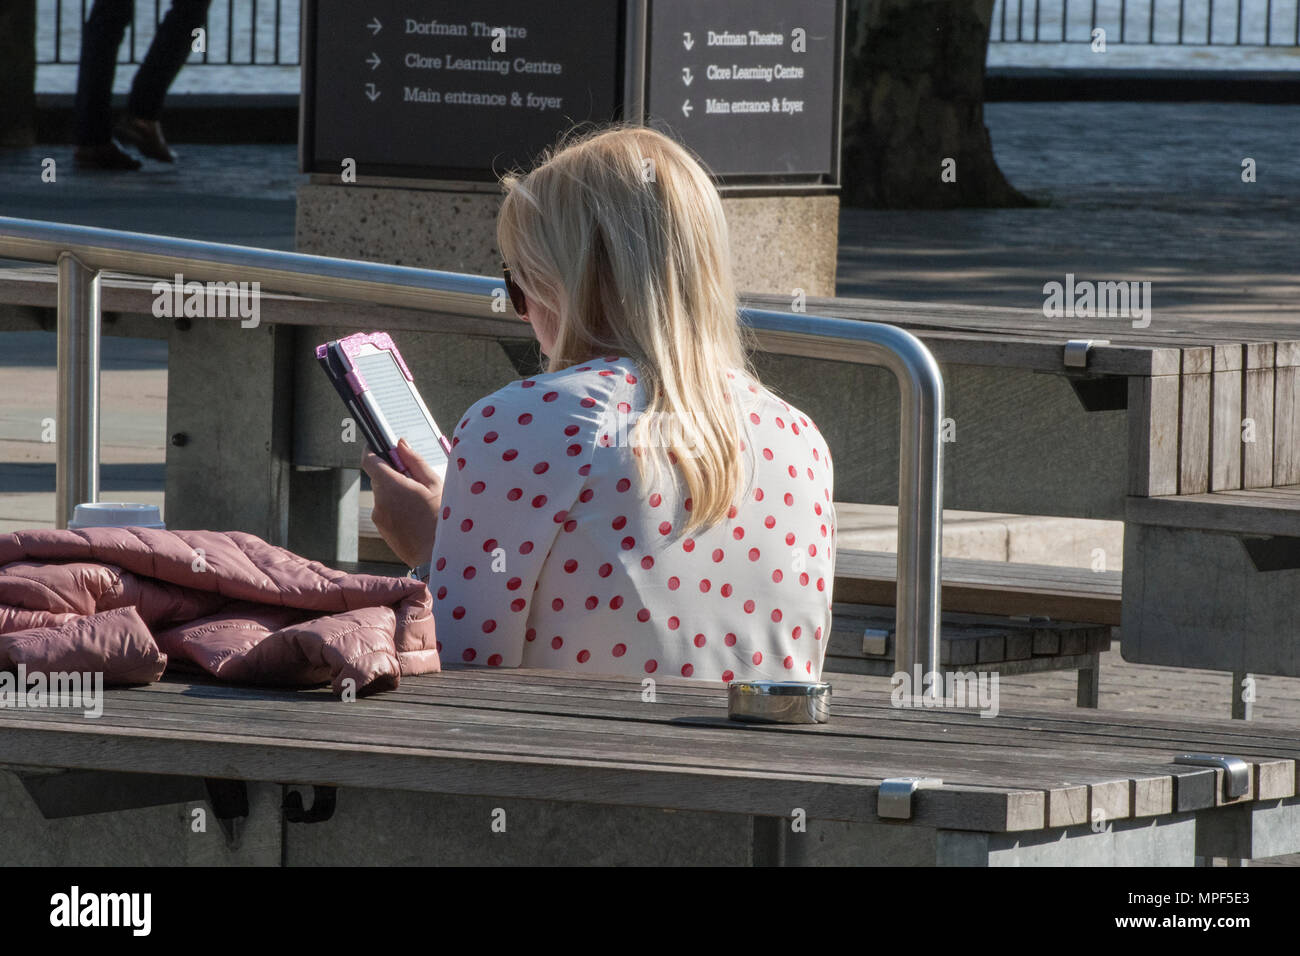 A young woman sitting down outside of the royal festival hall and national theatre in London relaxing and using an iPad in the warm summer sunshine. - Stock Image